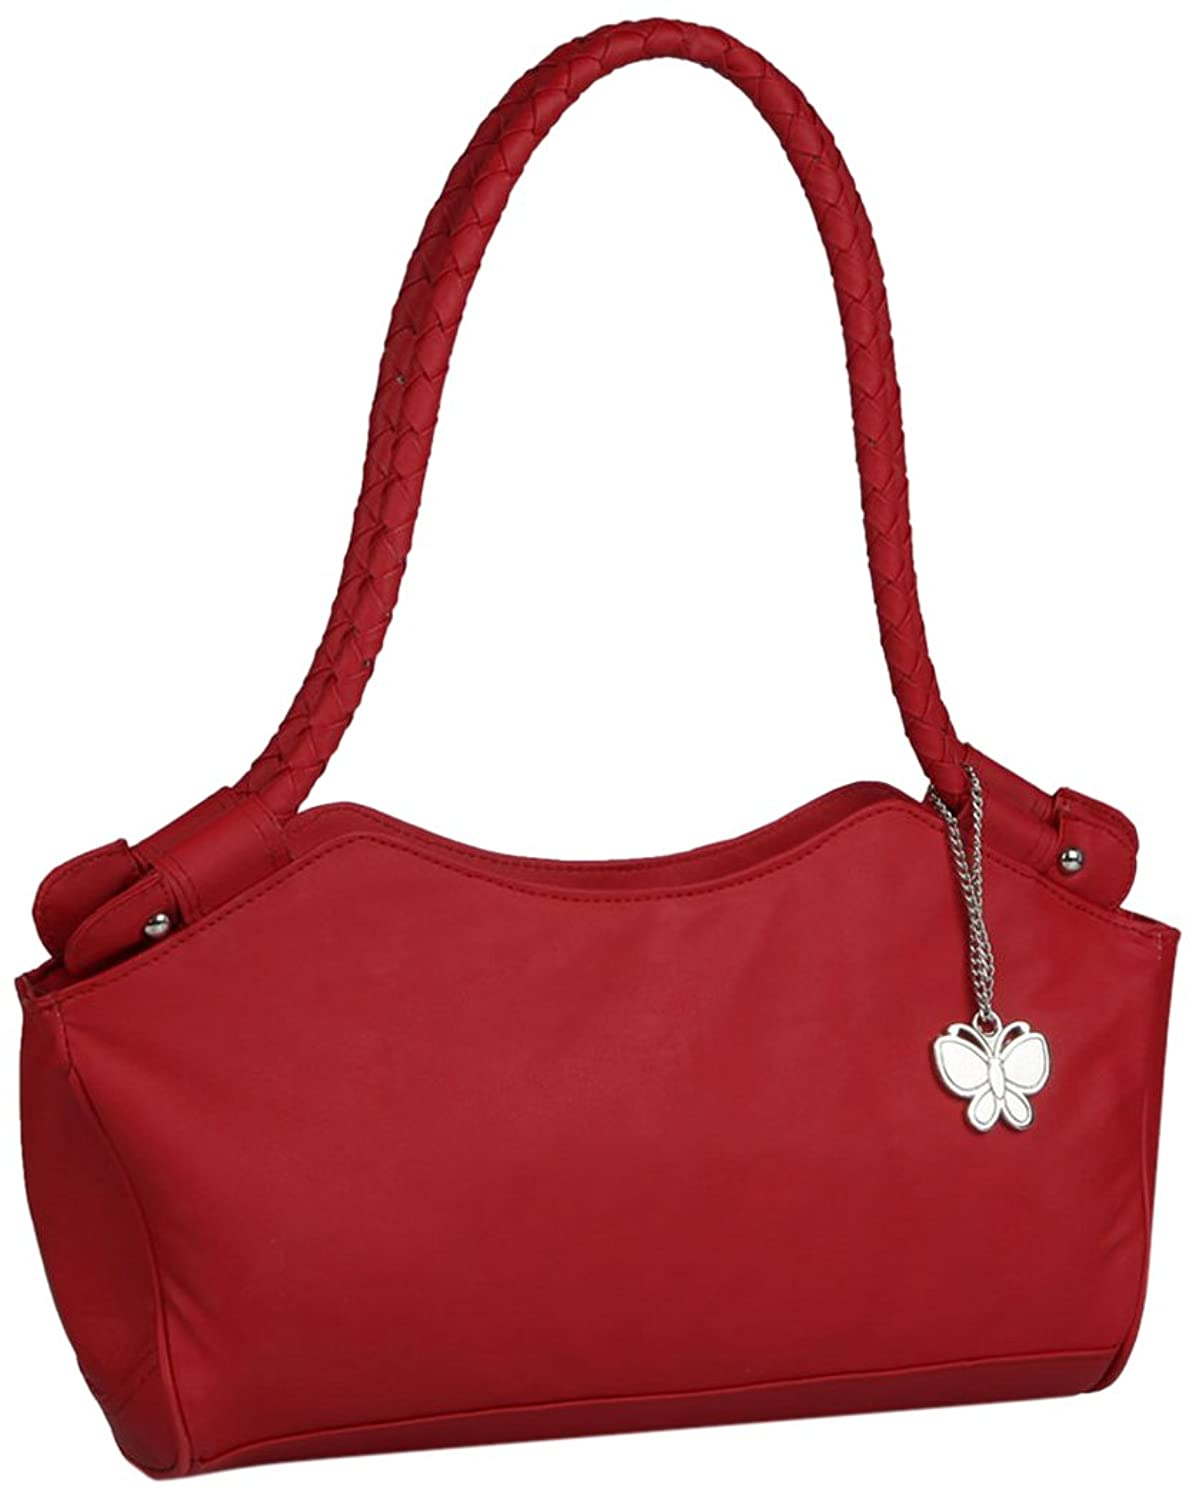 Synthetic Butterflies Handbag At Rs 479 - BNS 0304